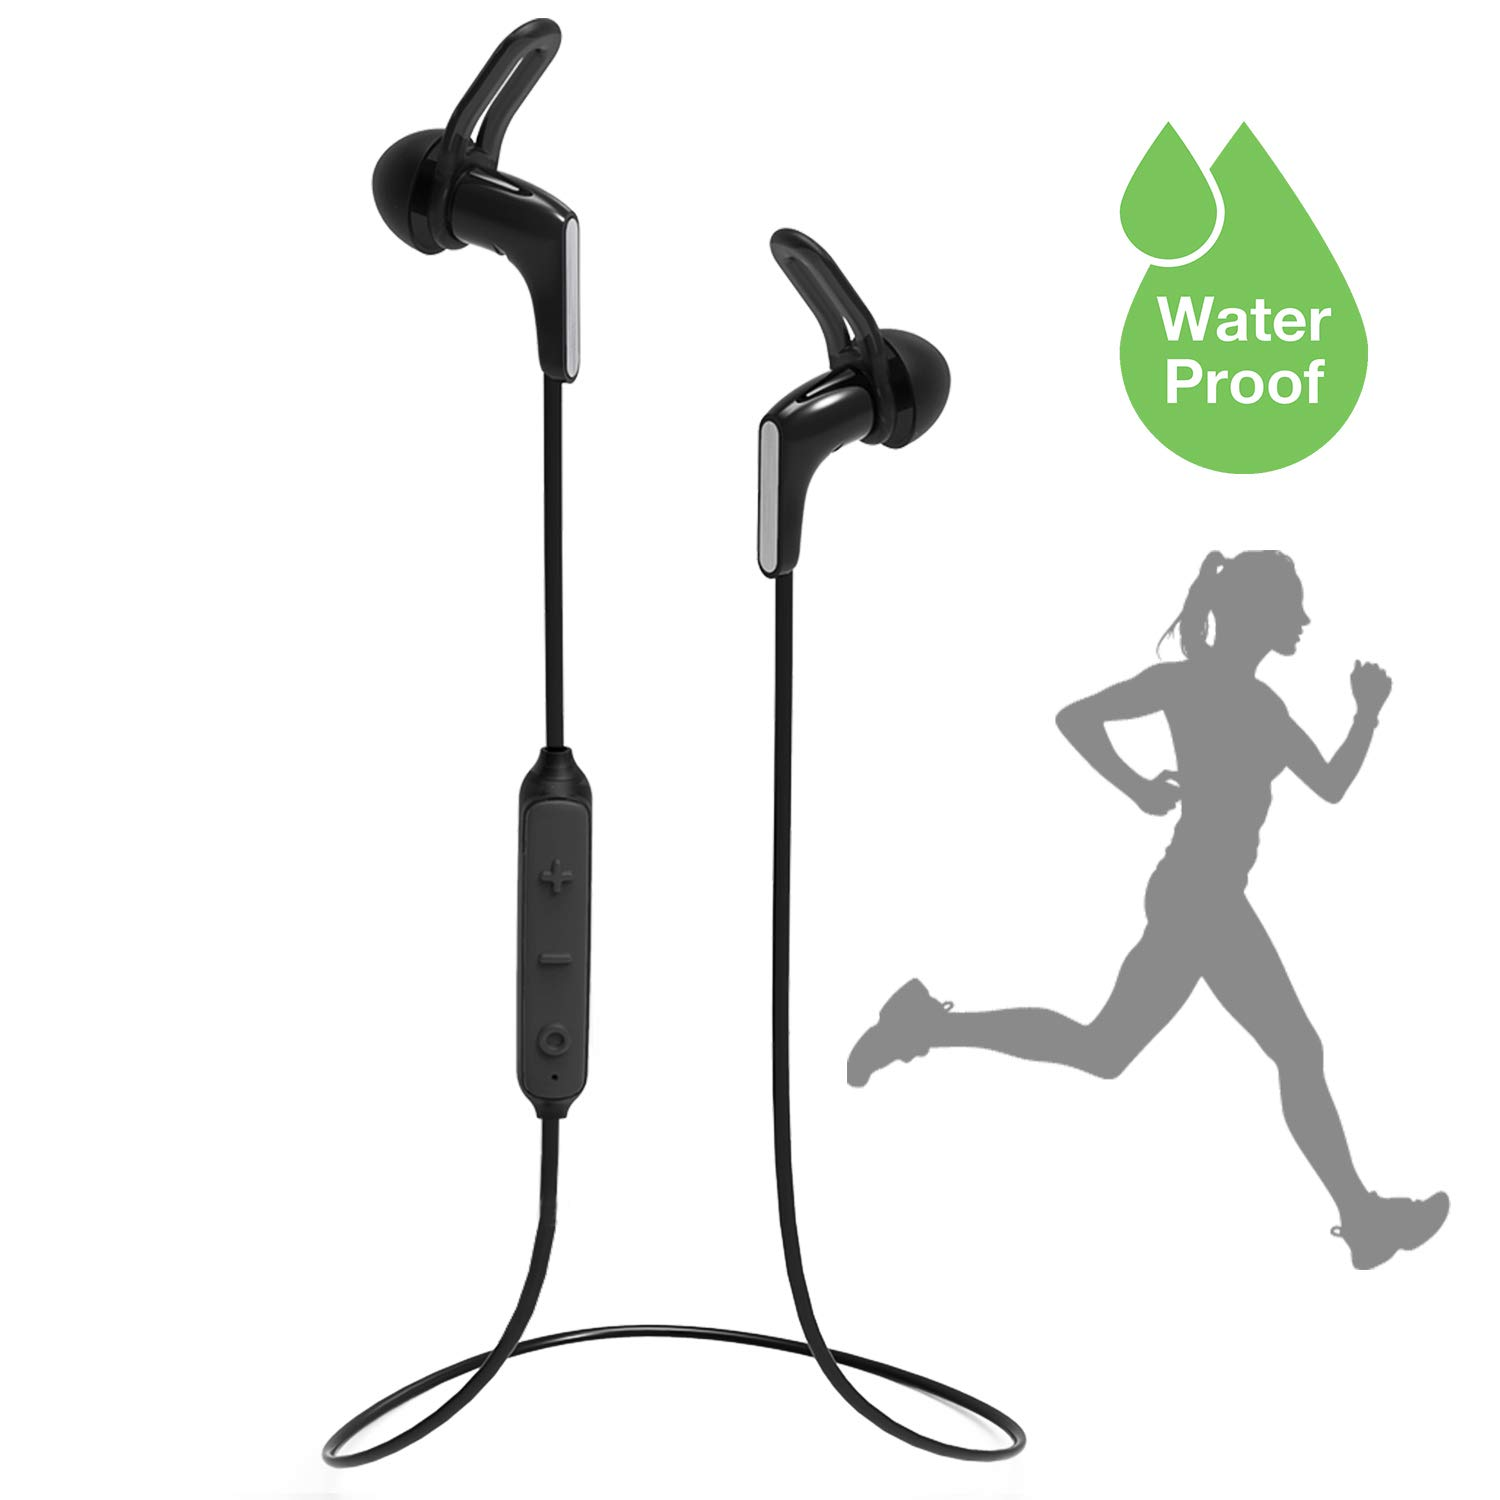 Avantree IPX7 Waterproof Bluetooth 5.0 Earbuds for Running Sports, SNUG Fit Super Light, Sweatproof Small Mini Headphones with Mic, Up to 13H Playtime for Workout Gym Cycling Hiking – HS134